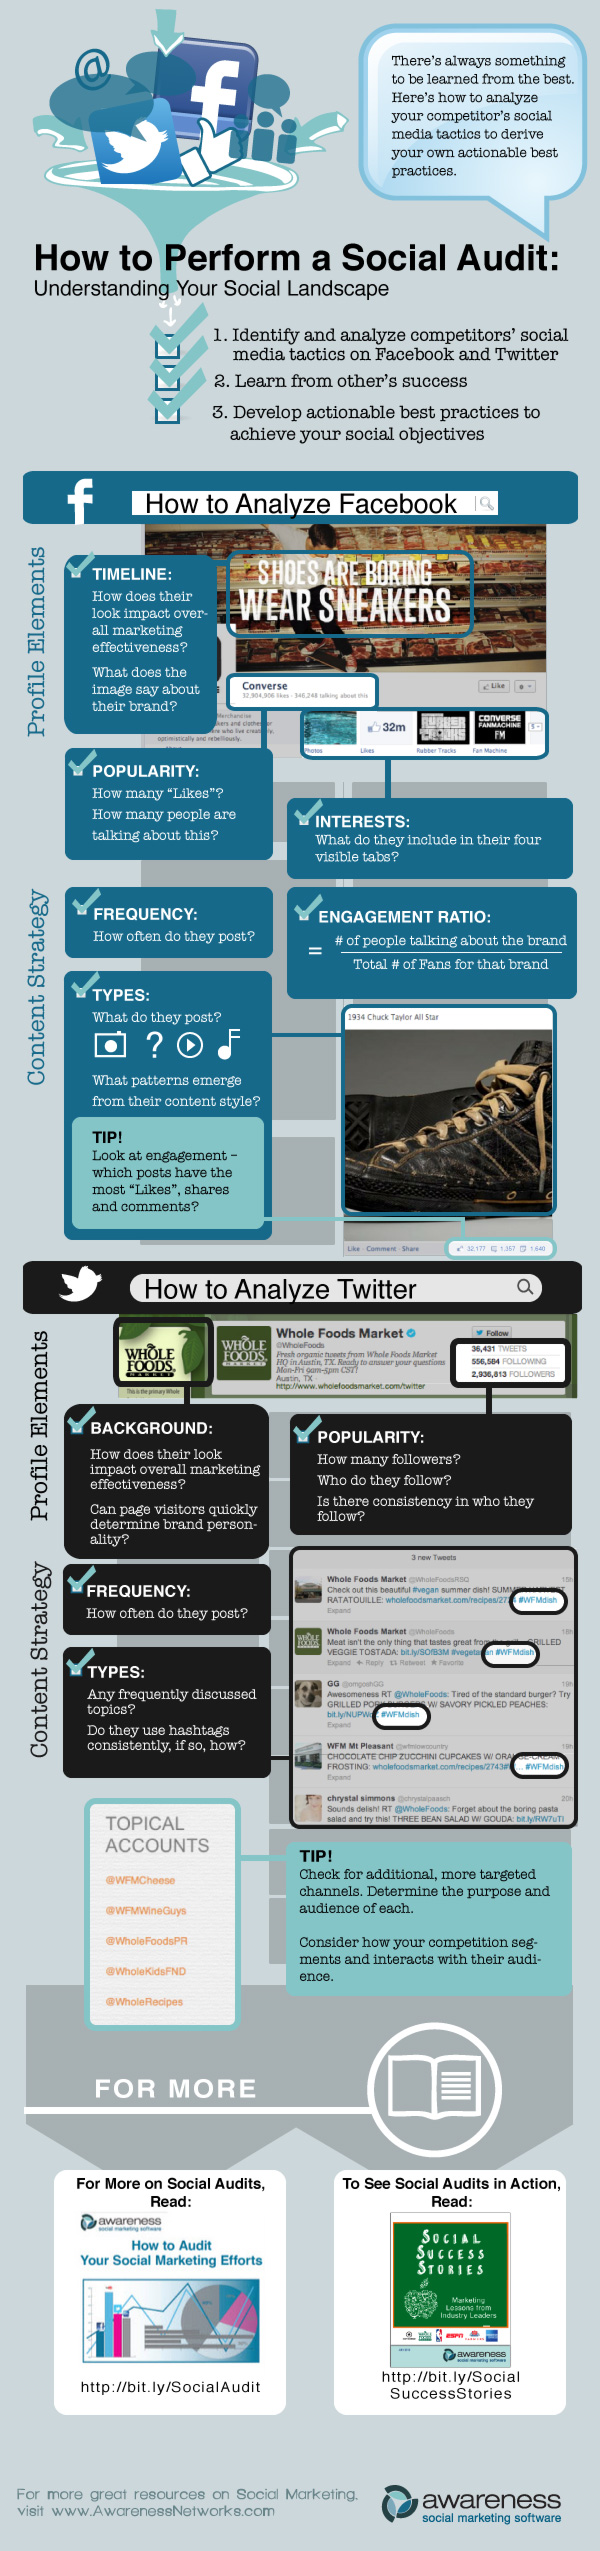 Social Audit Infographic